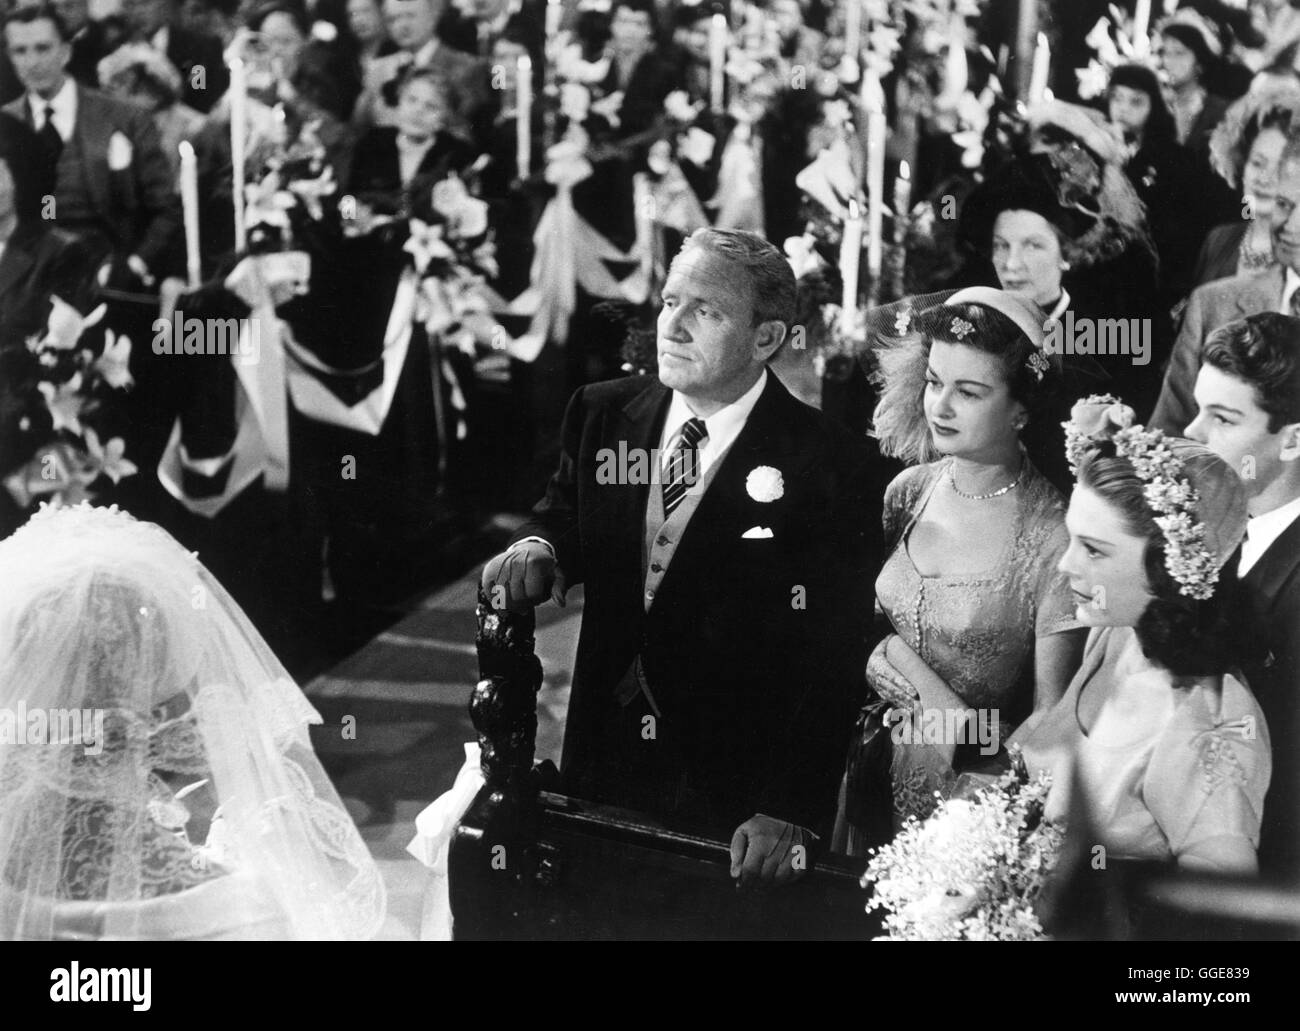 VATER DER BRAUT  Father of the Bride USA 1950  Vincente Minnelli Stock Photo Royalty Free